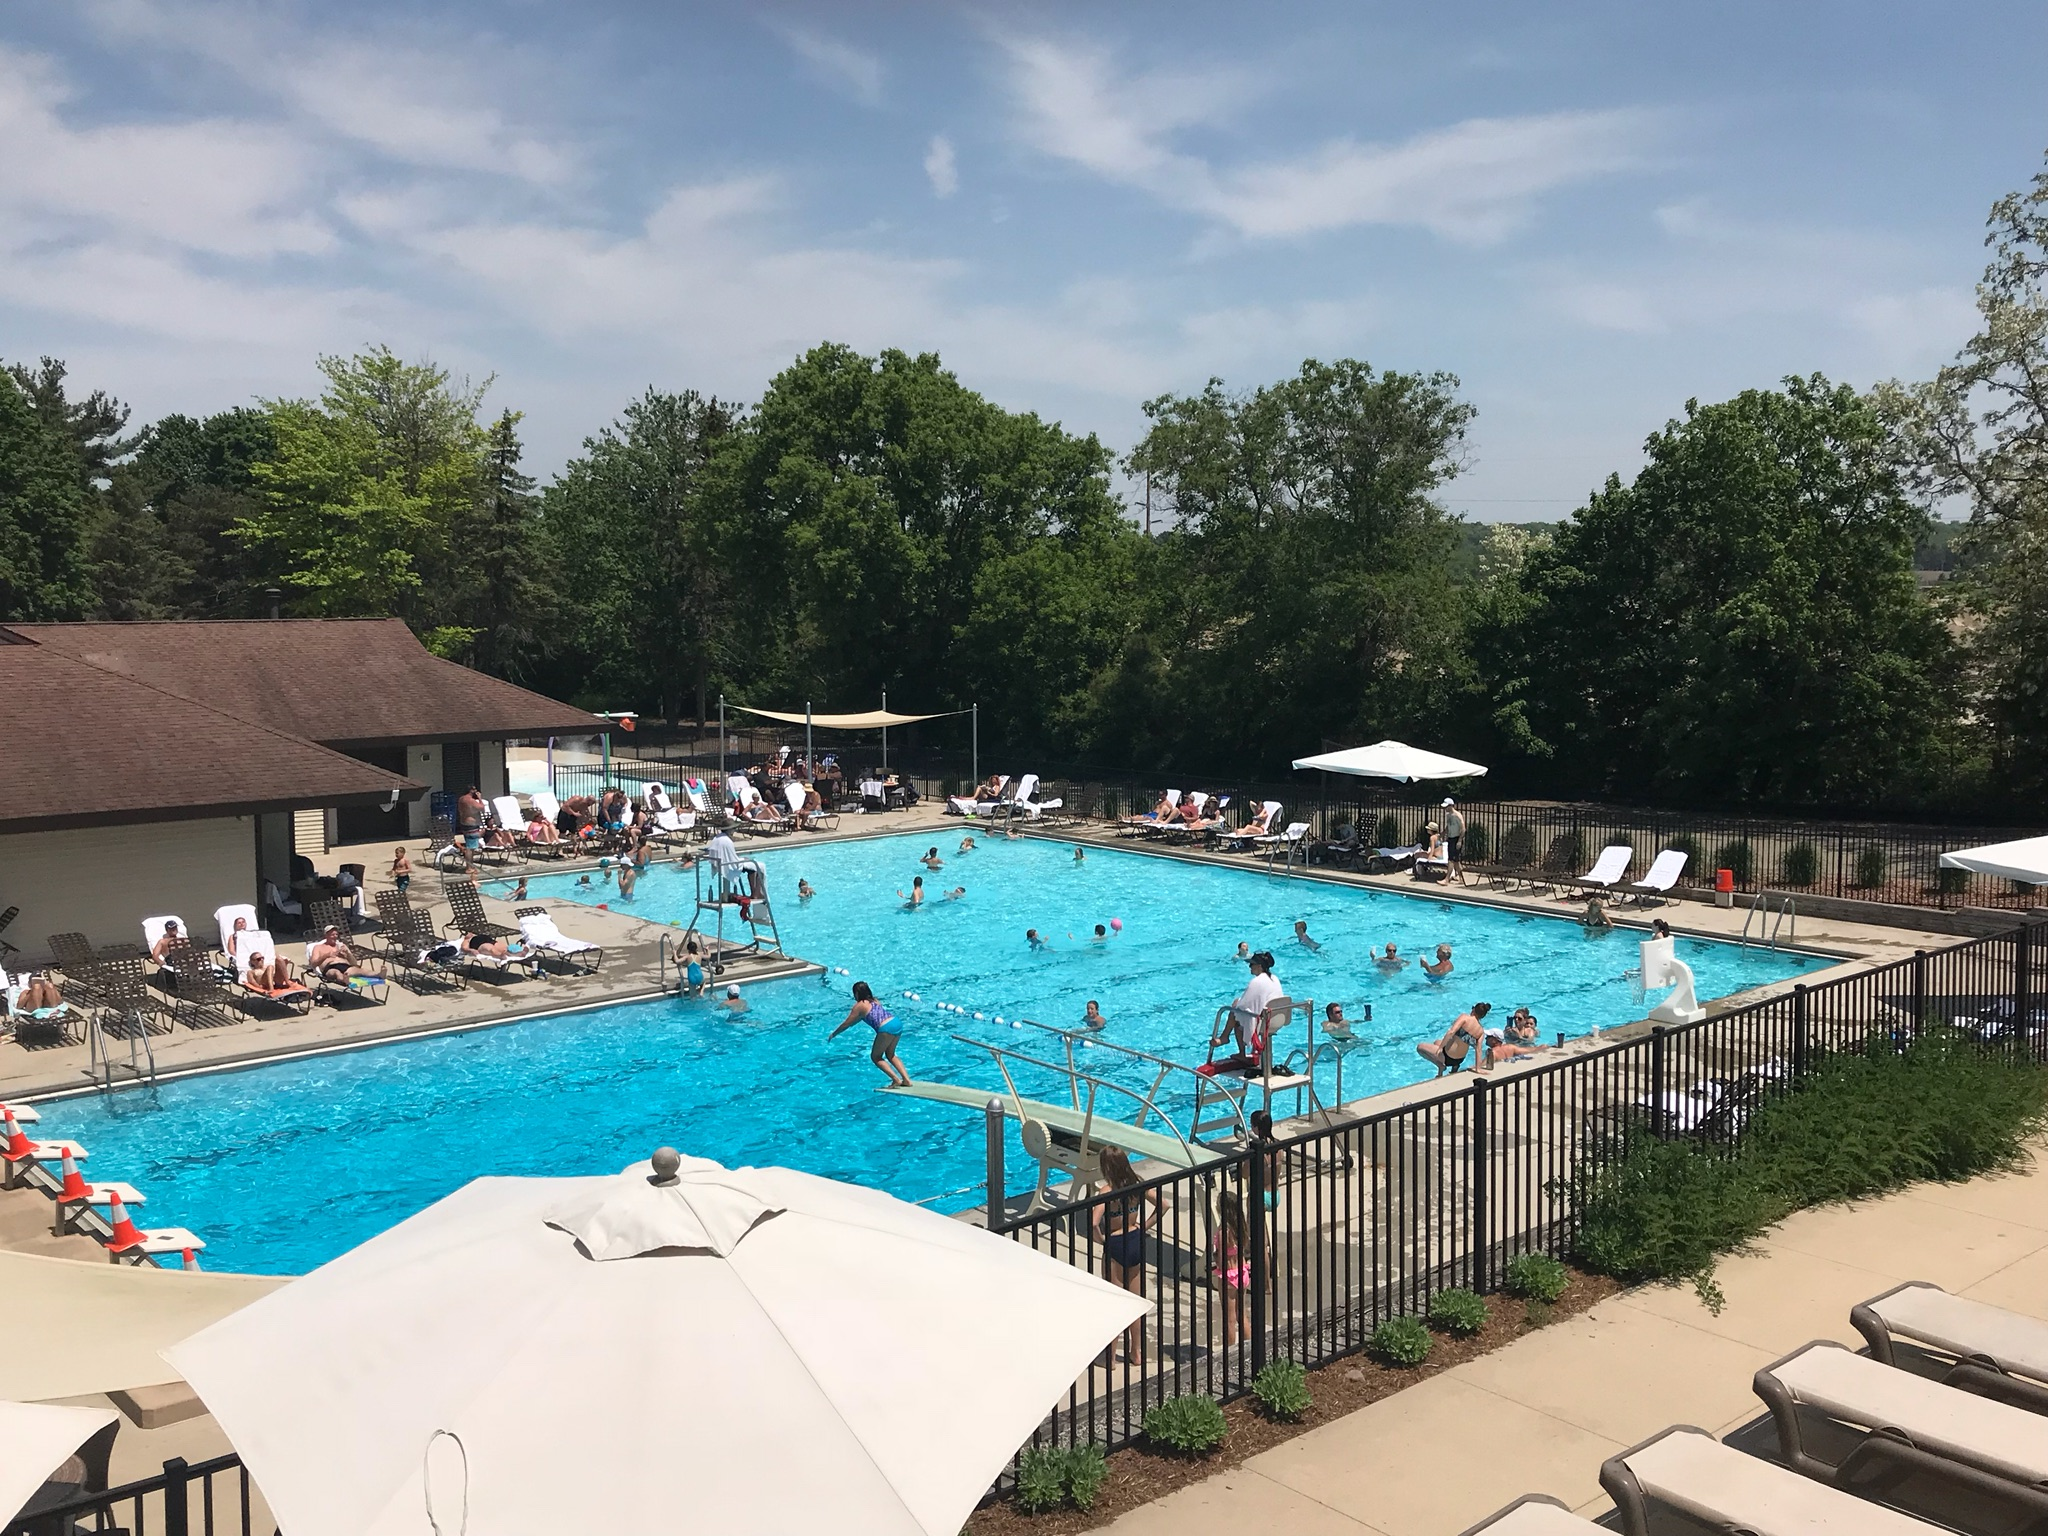 """Life Guarding with Swim Coach, Katie Clarin - The pool at BCC is the place to be from Memorial Day to Labor Day. Join the life guarding team and enjoy days in the sun keeping an eye on our """"members in training"""